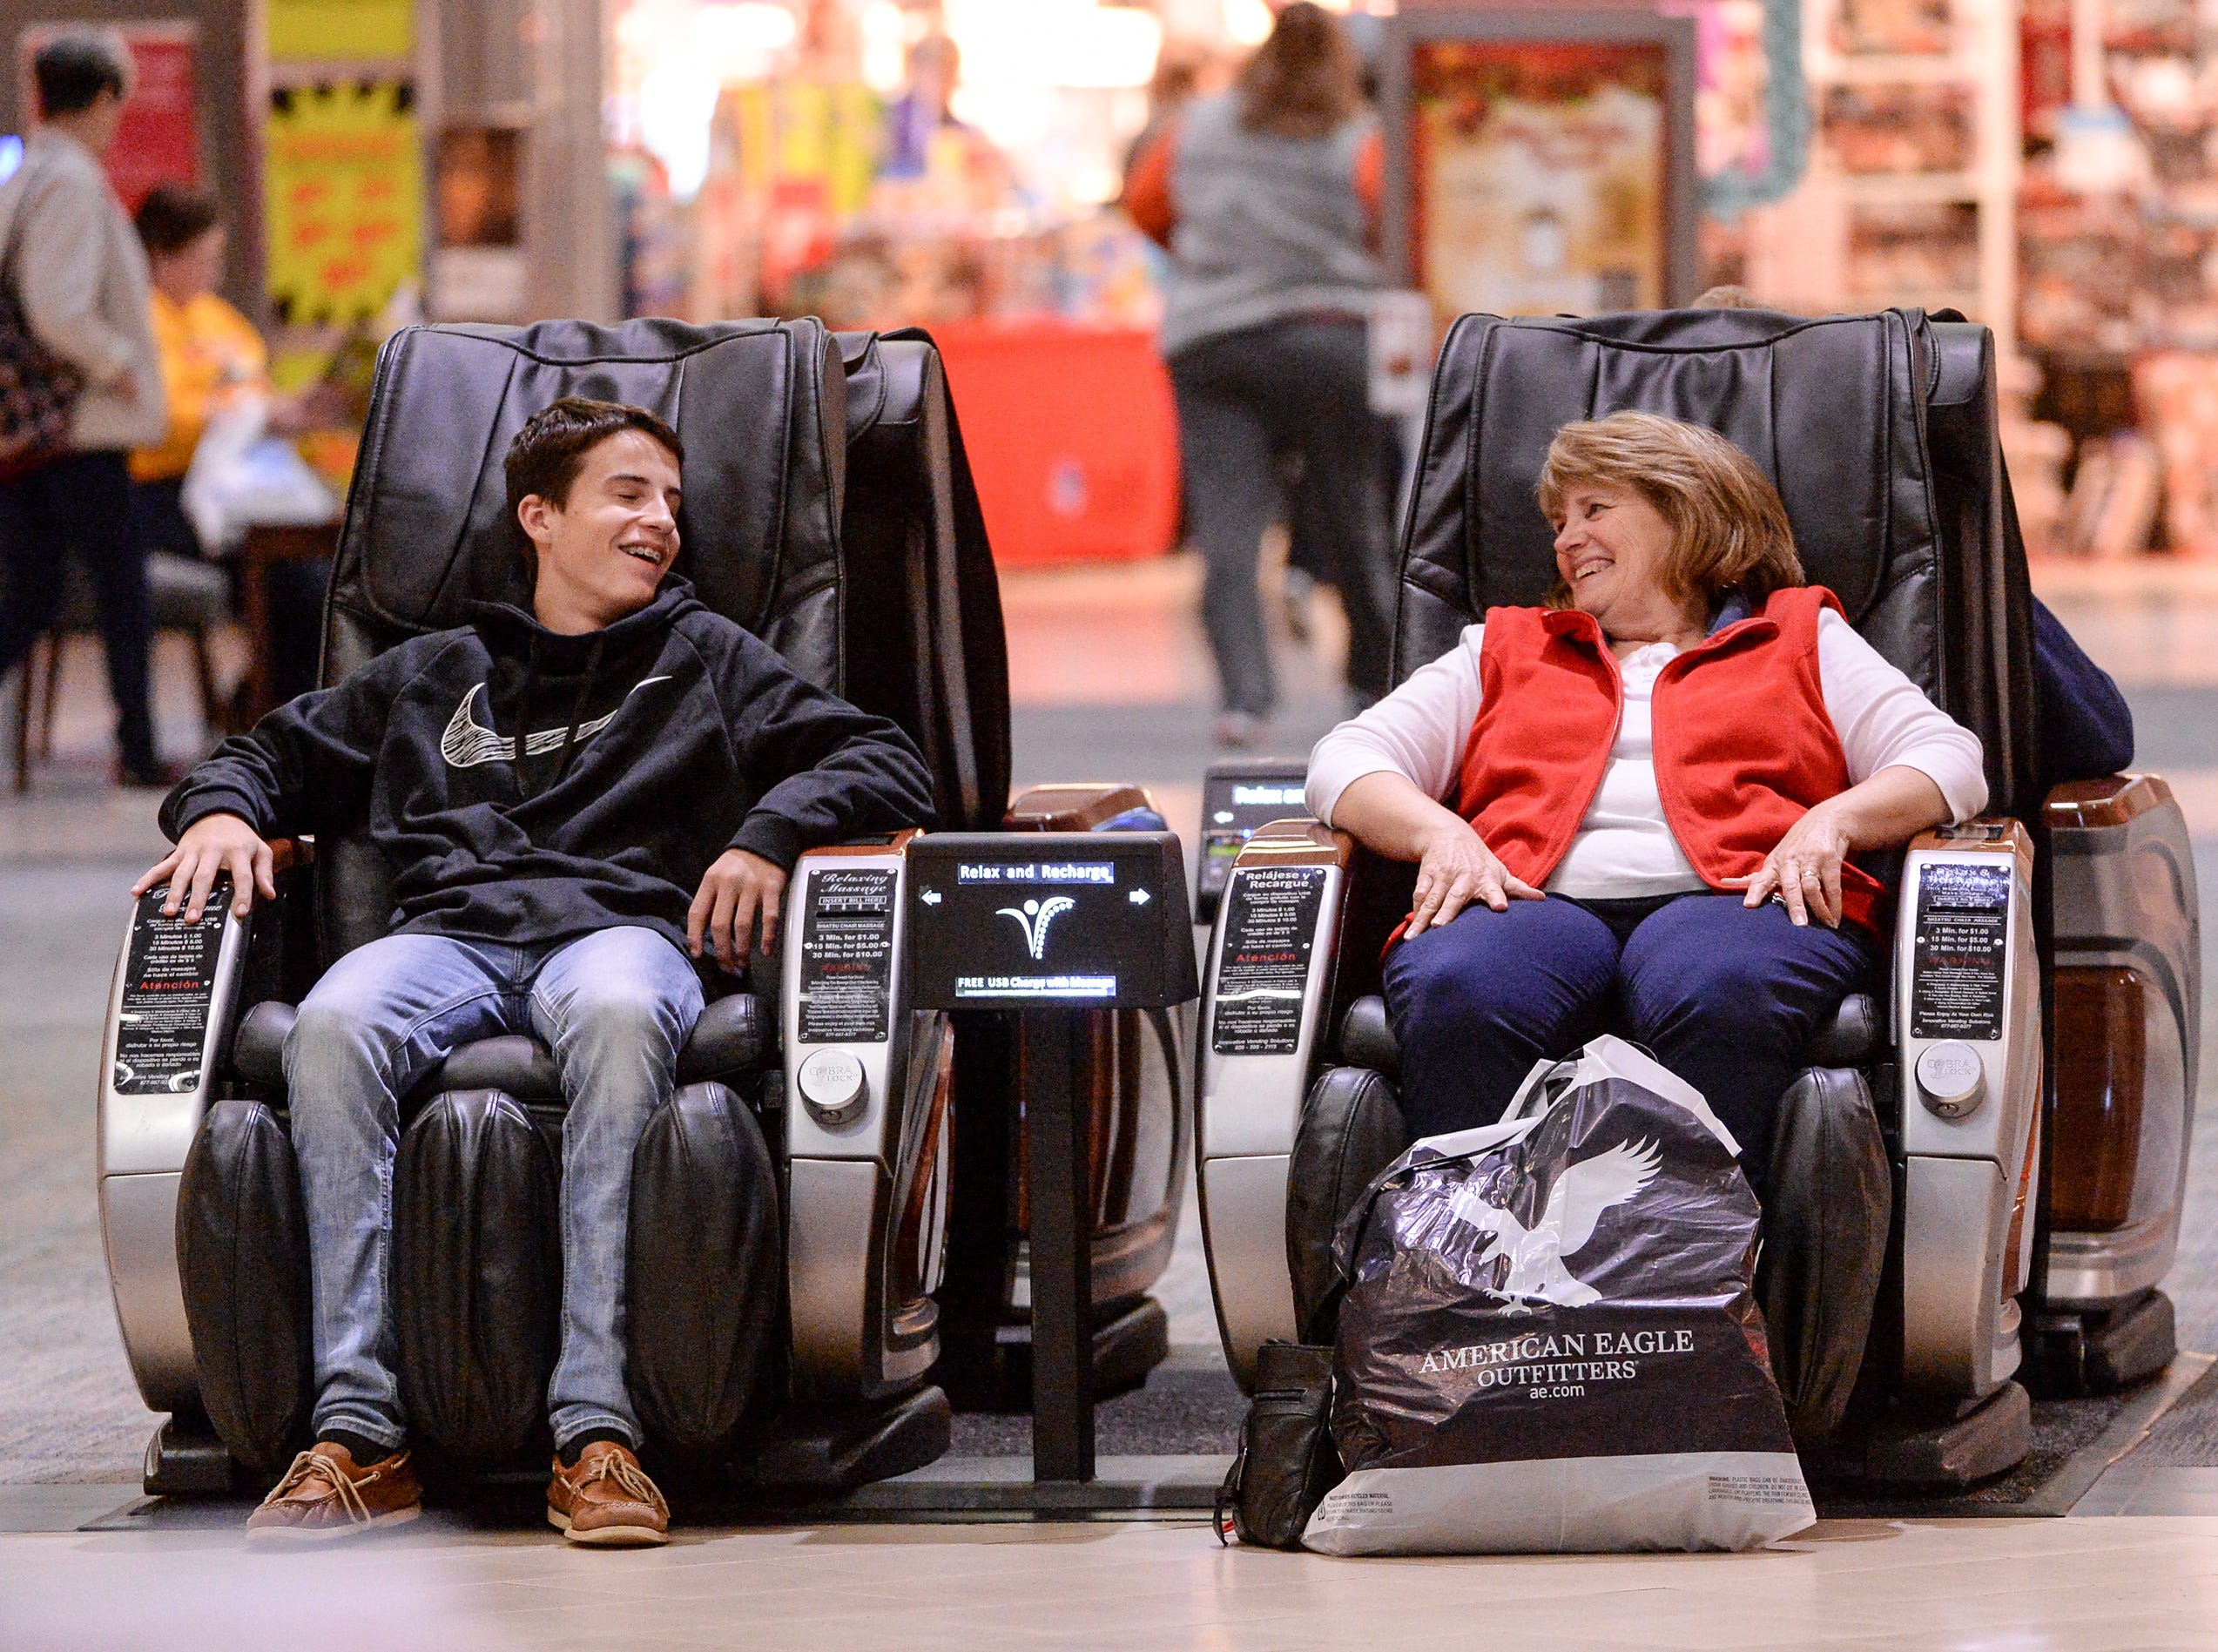 Andrew Dickerson, left, and Carol Rutledge, both of Belton, relax in massage chairs after shopping in the Anderson Mall for Black Friday sales items in Anderson on Friday, November 23, 2018.